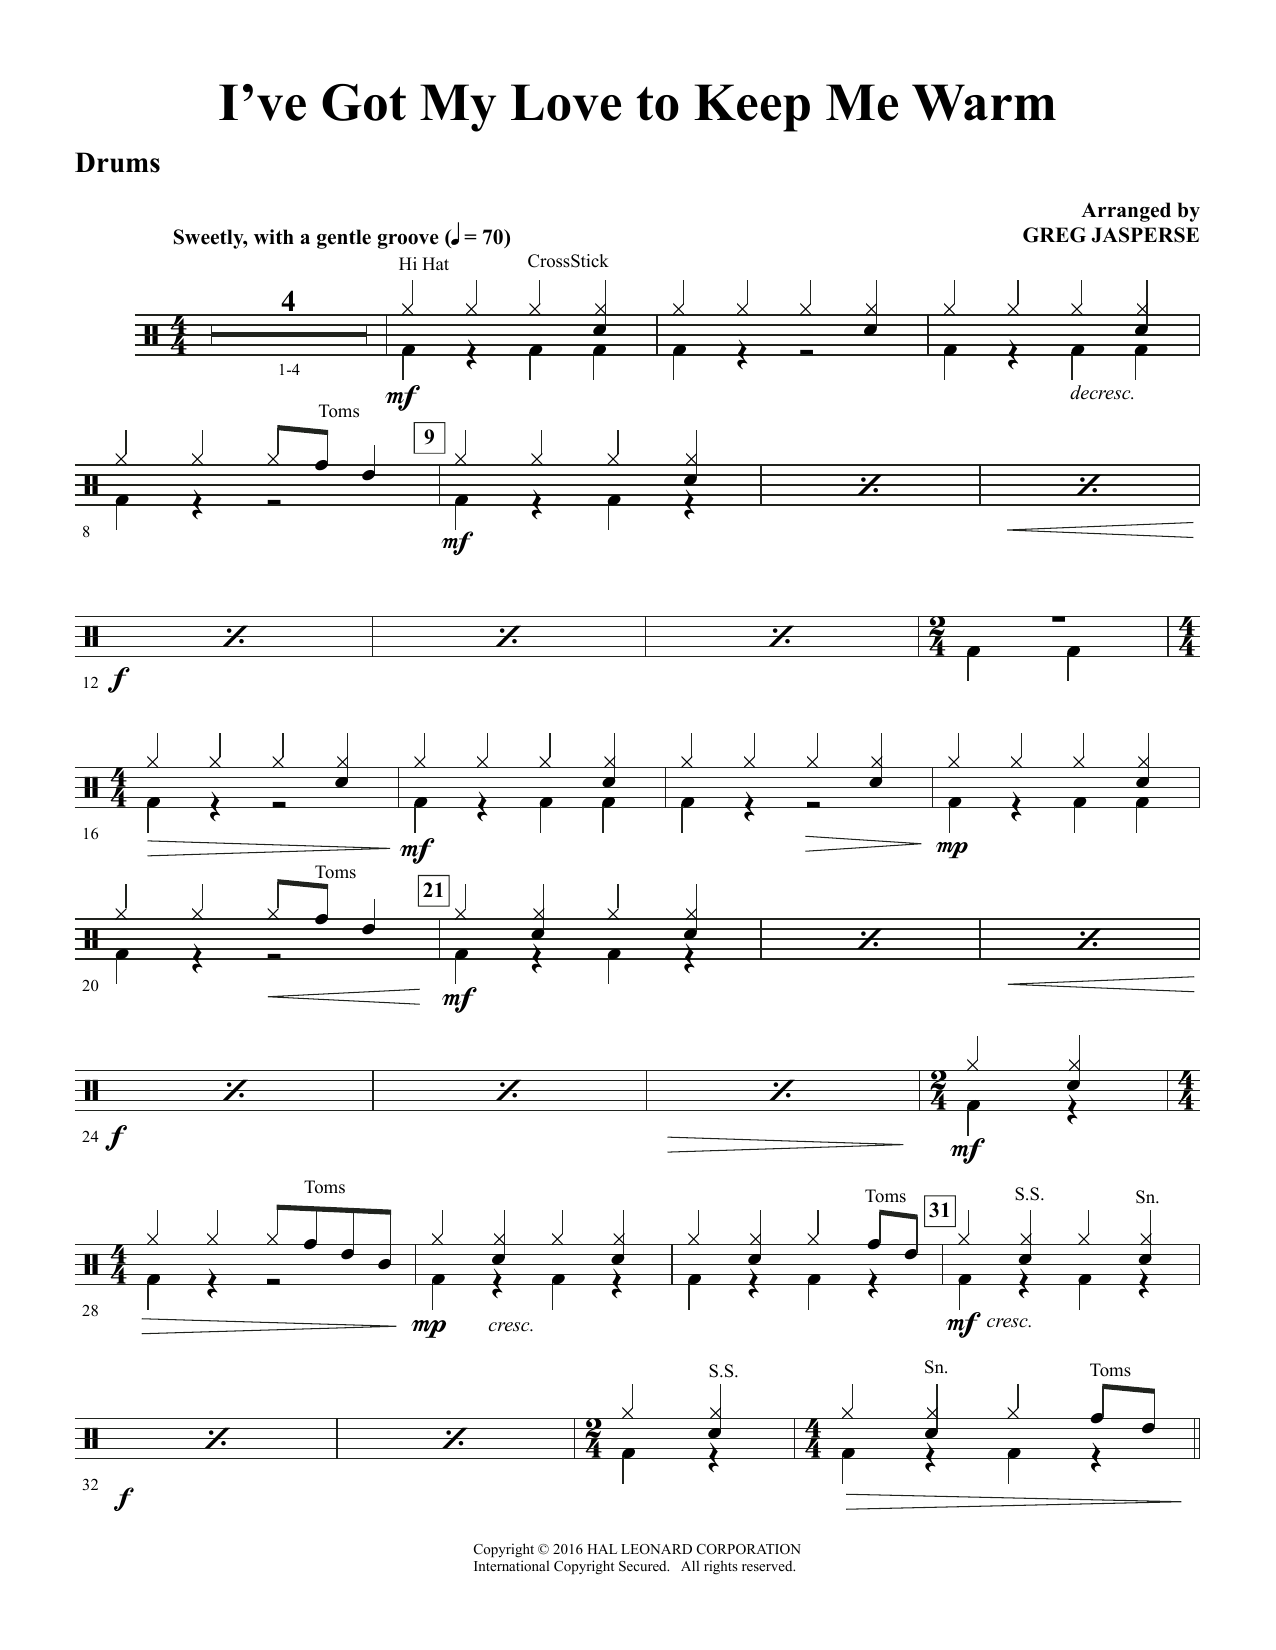 I've Got My Love to Keep Me Warm - Drums Sheet Music